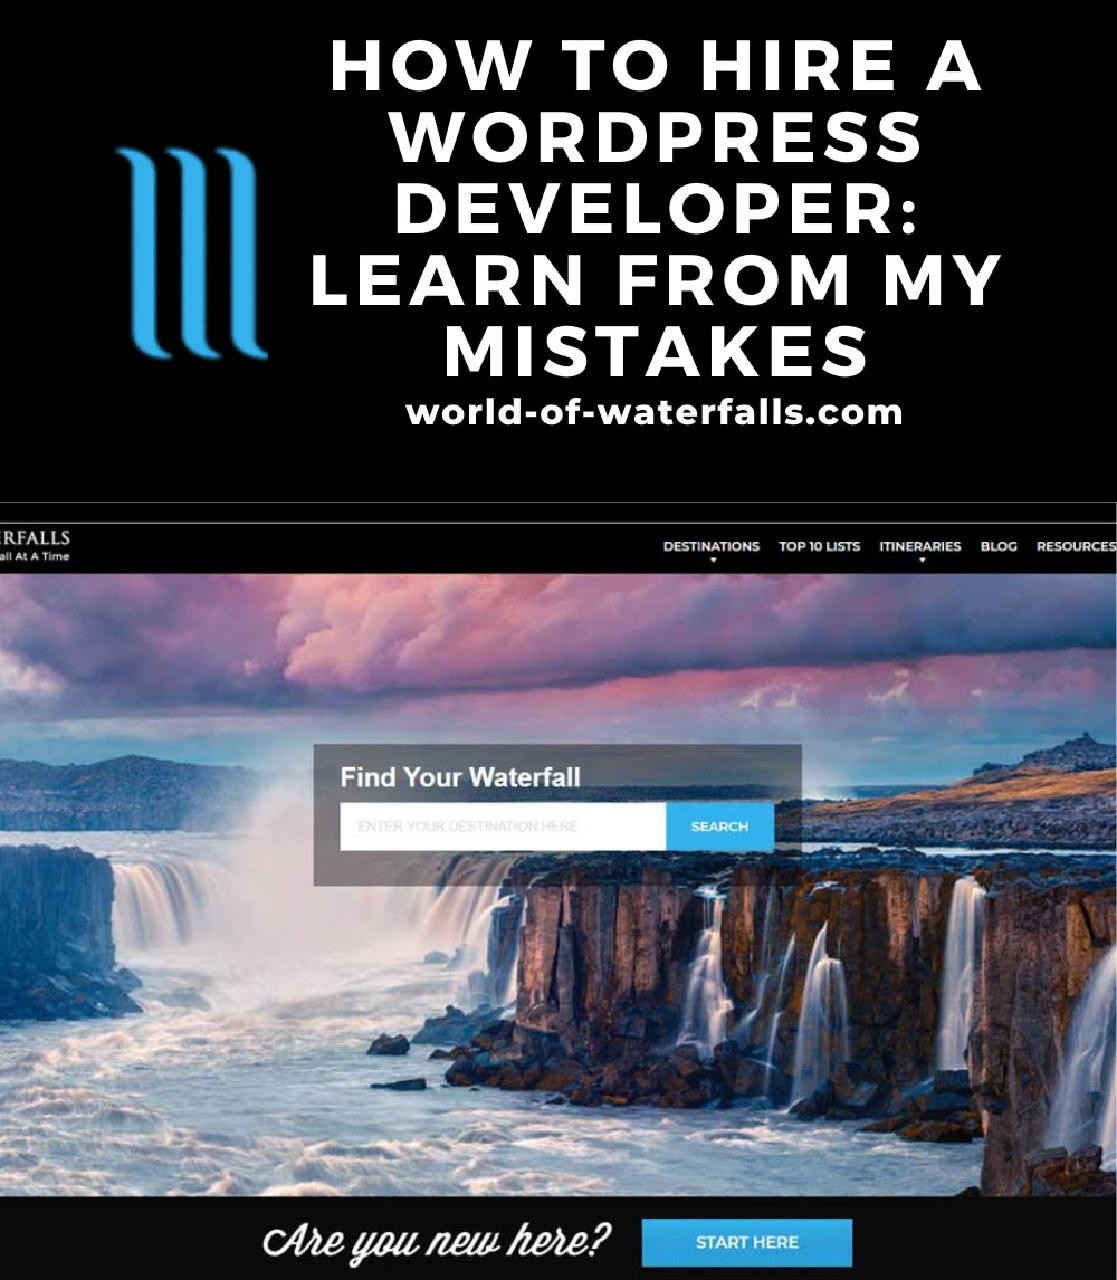 How to Hire a WordPress Developer: Learn from My Mistakes